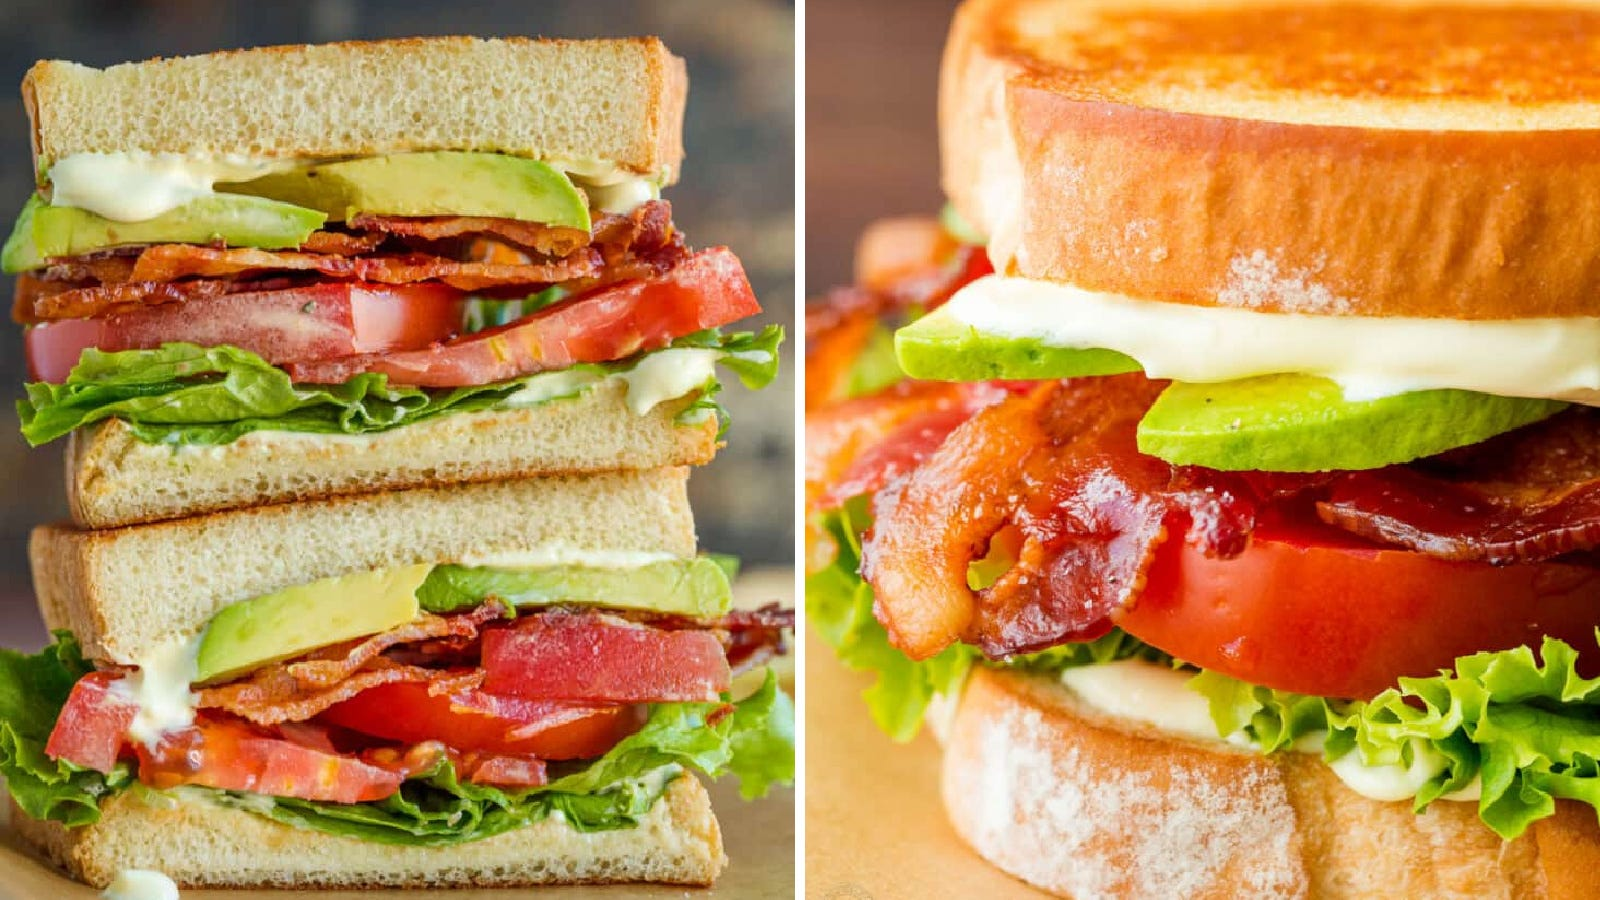 Two side by side images of a BLT sandwich. The left image is of a stacked BLT, displaying the ingredients in the sandwich and the right image is of a side view of the BLT.